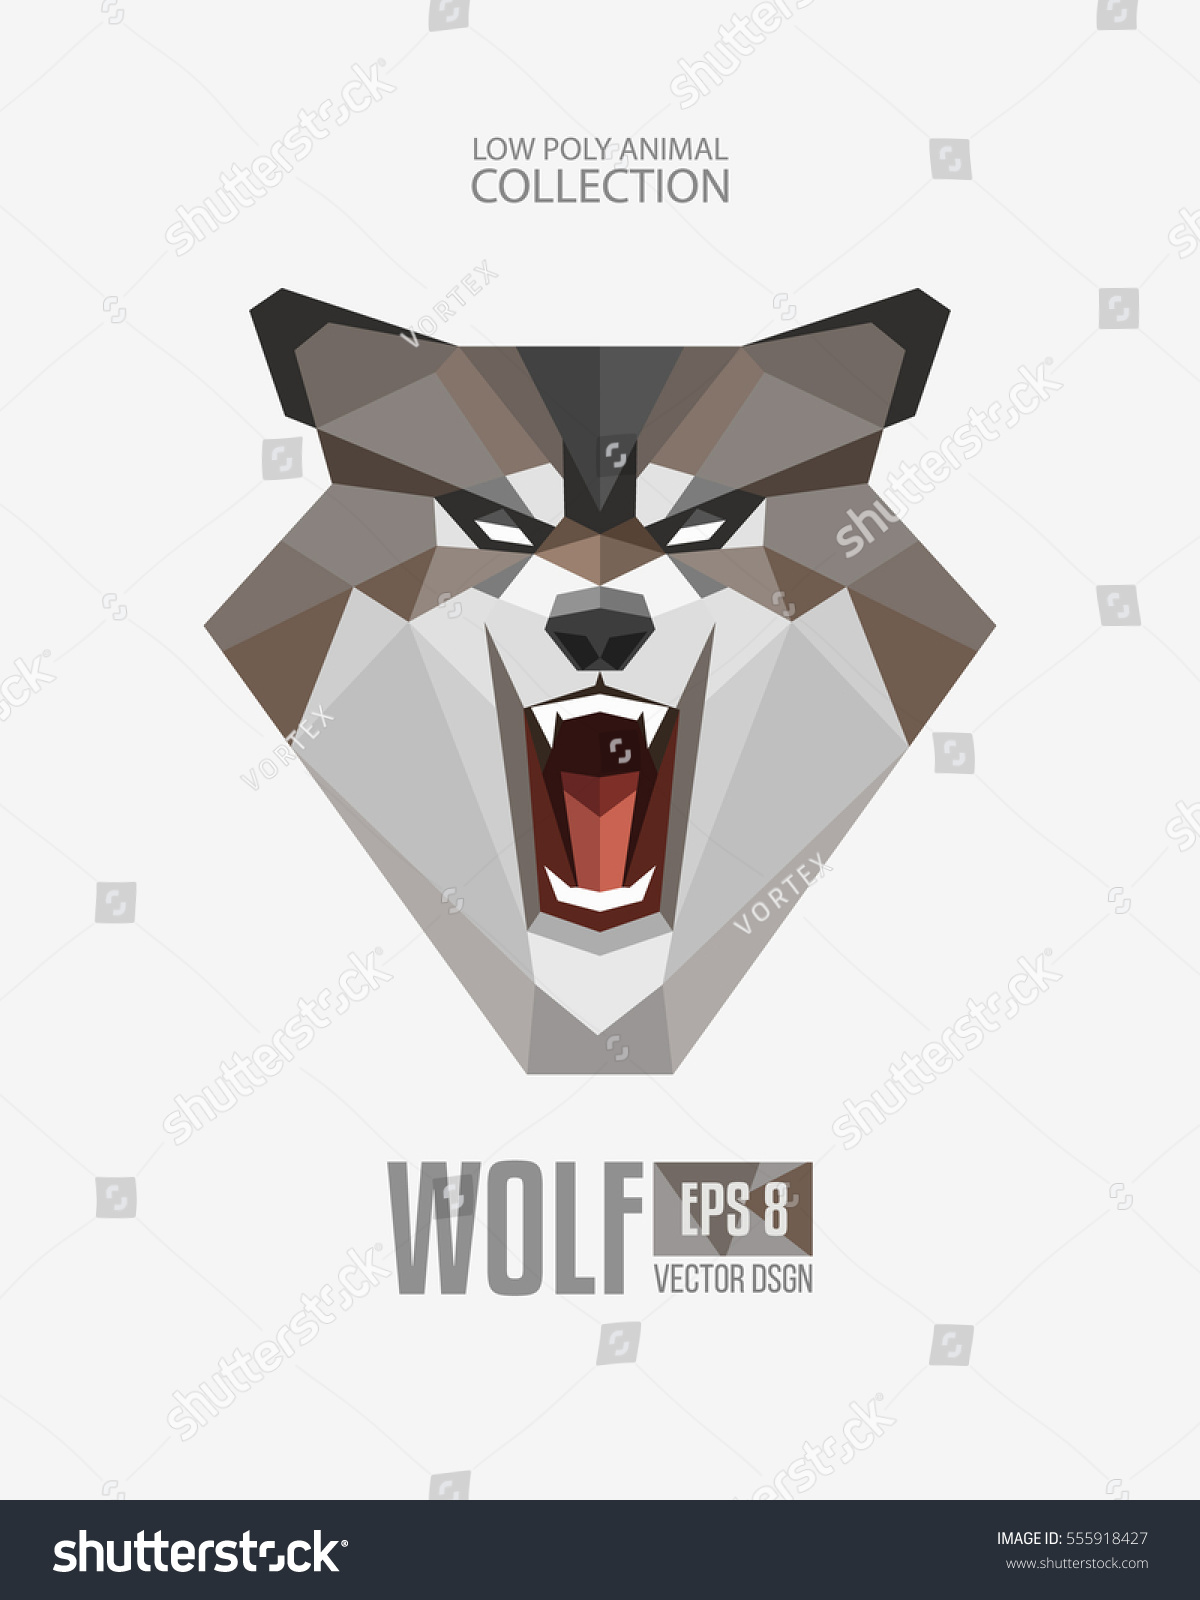 Tiger head triangular icon geometric trendy stock vector image - Polygon Style Angry Wolf Roaring Mascot Face Head Geometric Logo Emblem Modern Geometric Triangular Animal